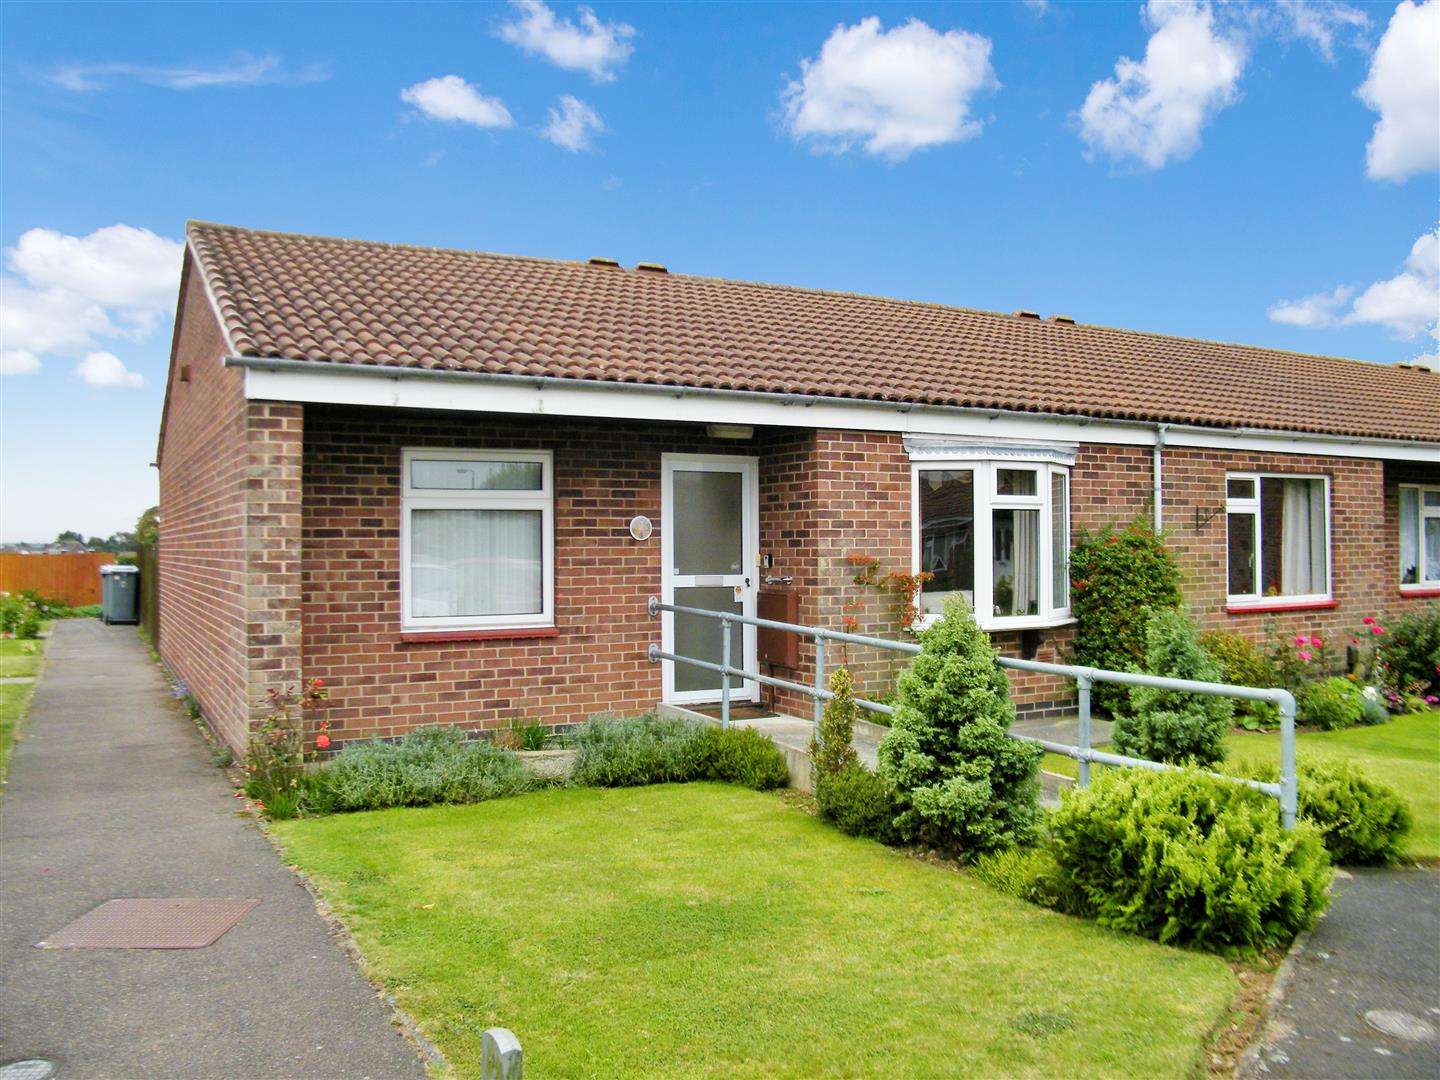 2 bedroom property in Great Gonerby